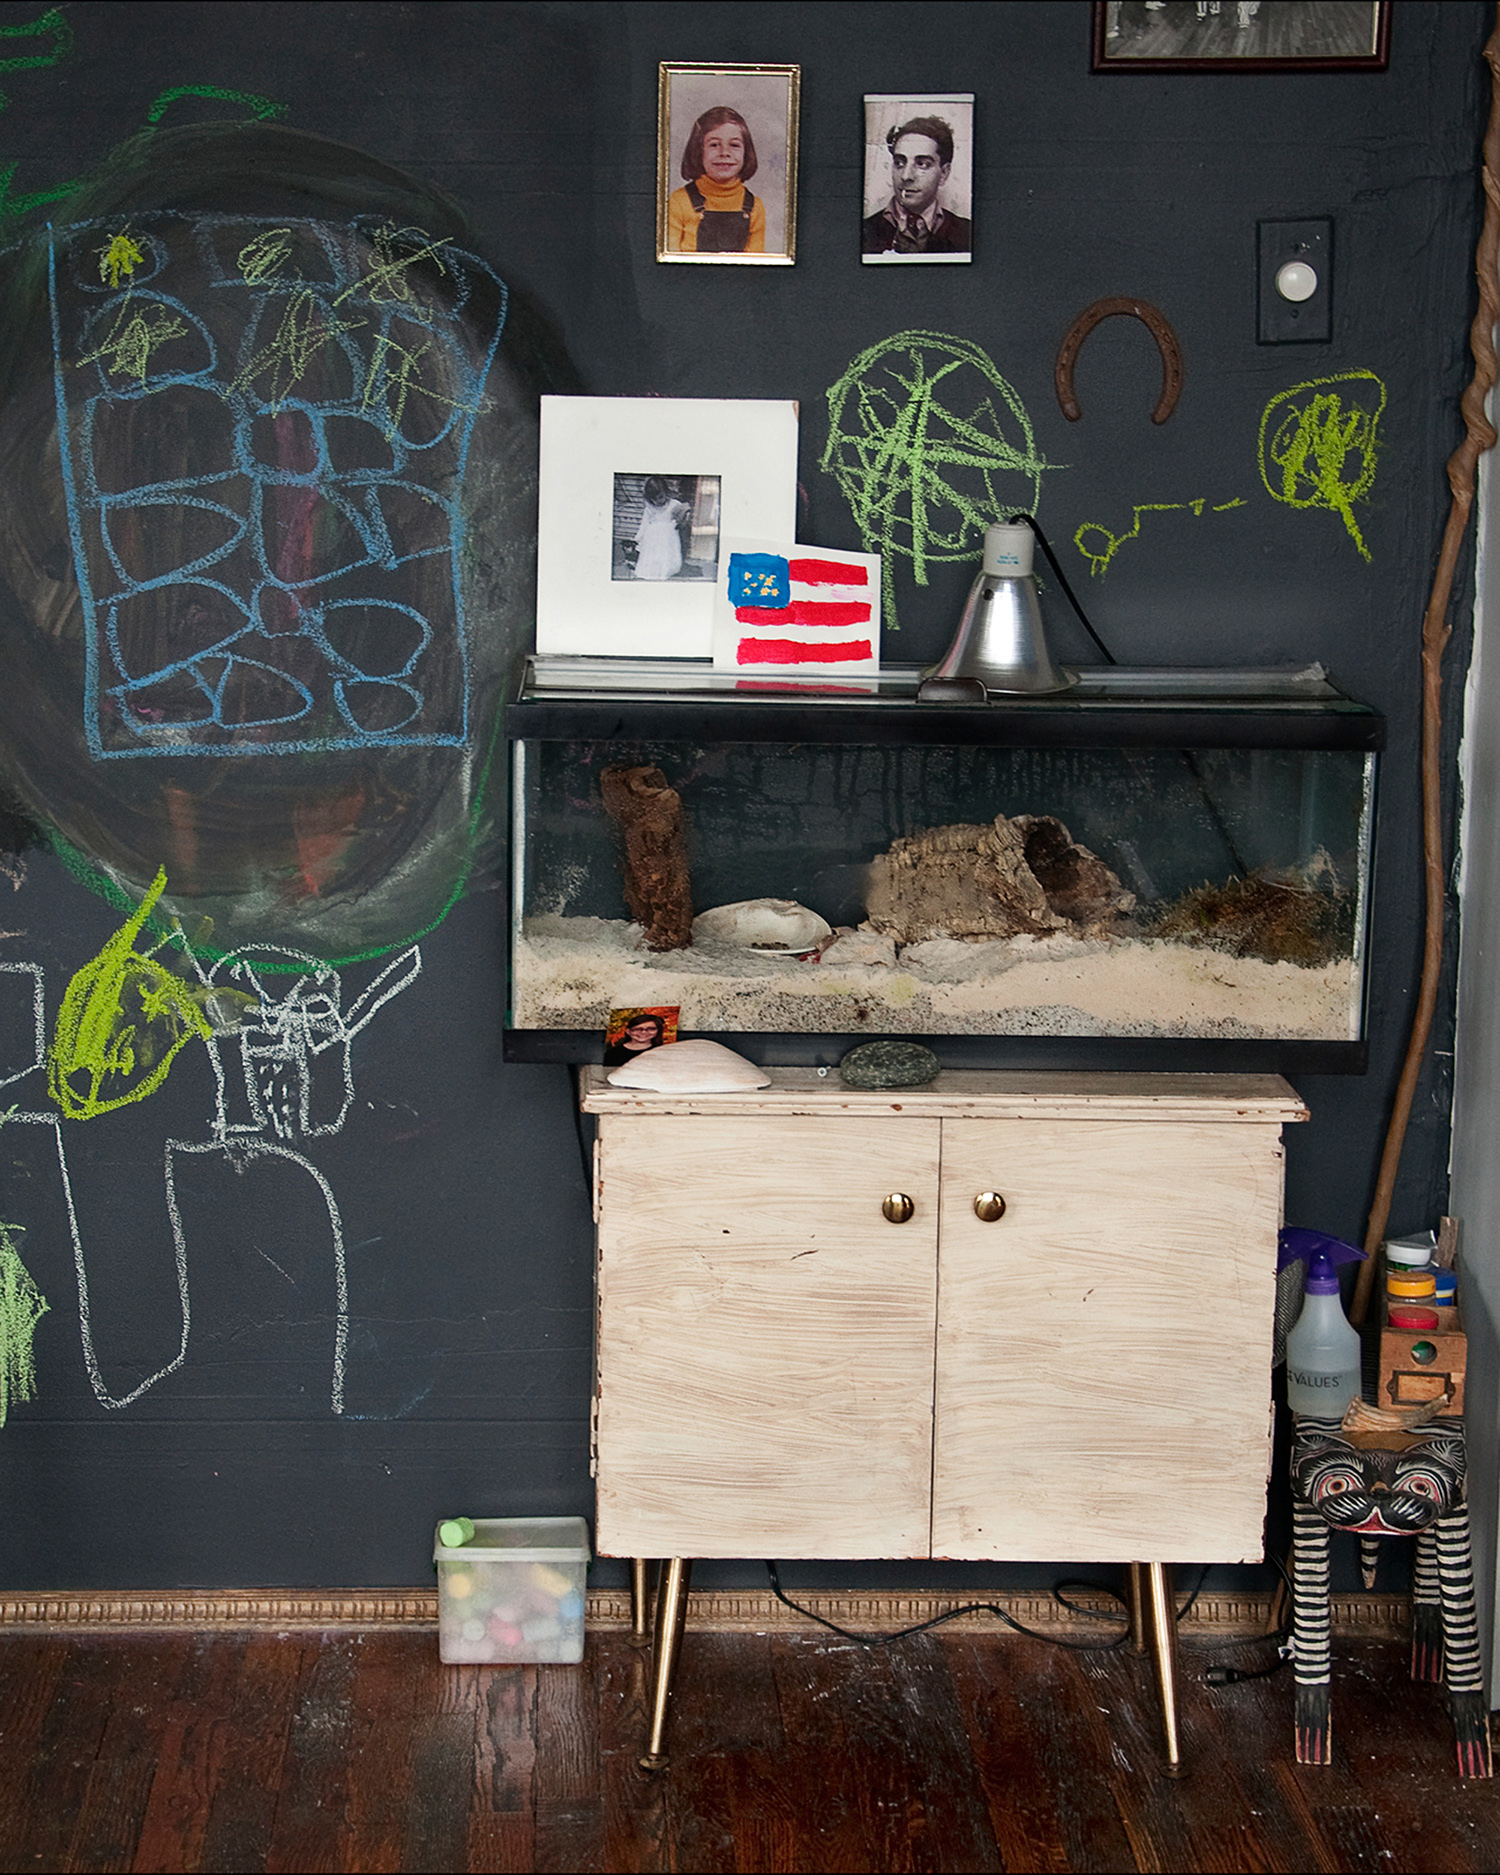 A display case with a hermit crab on a cabinet sided by a toy cat and against a wall-size blackboard with drawings and family photographs.